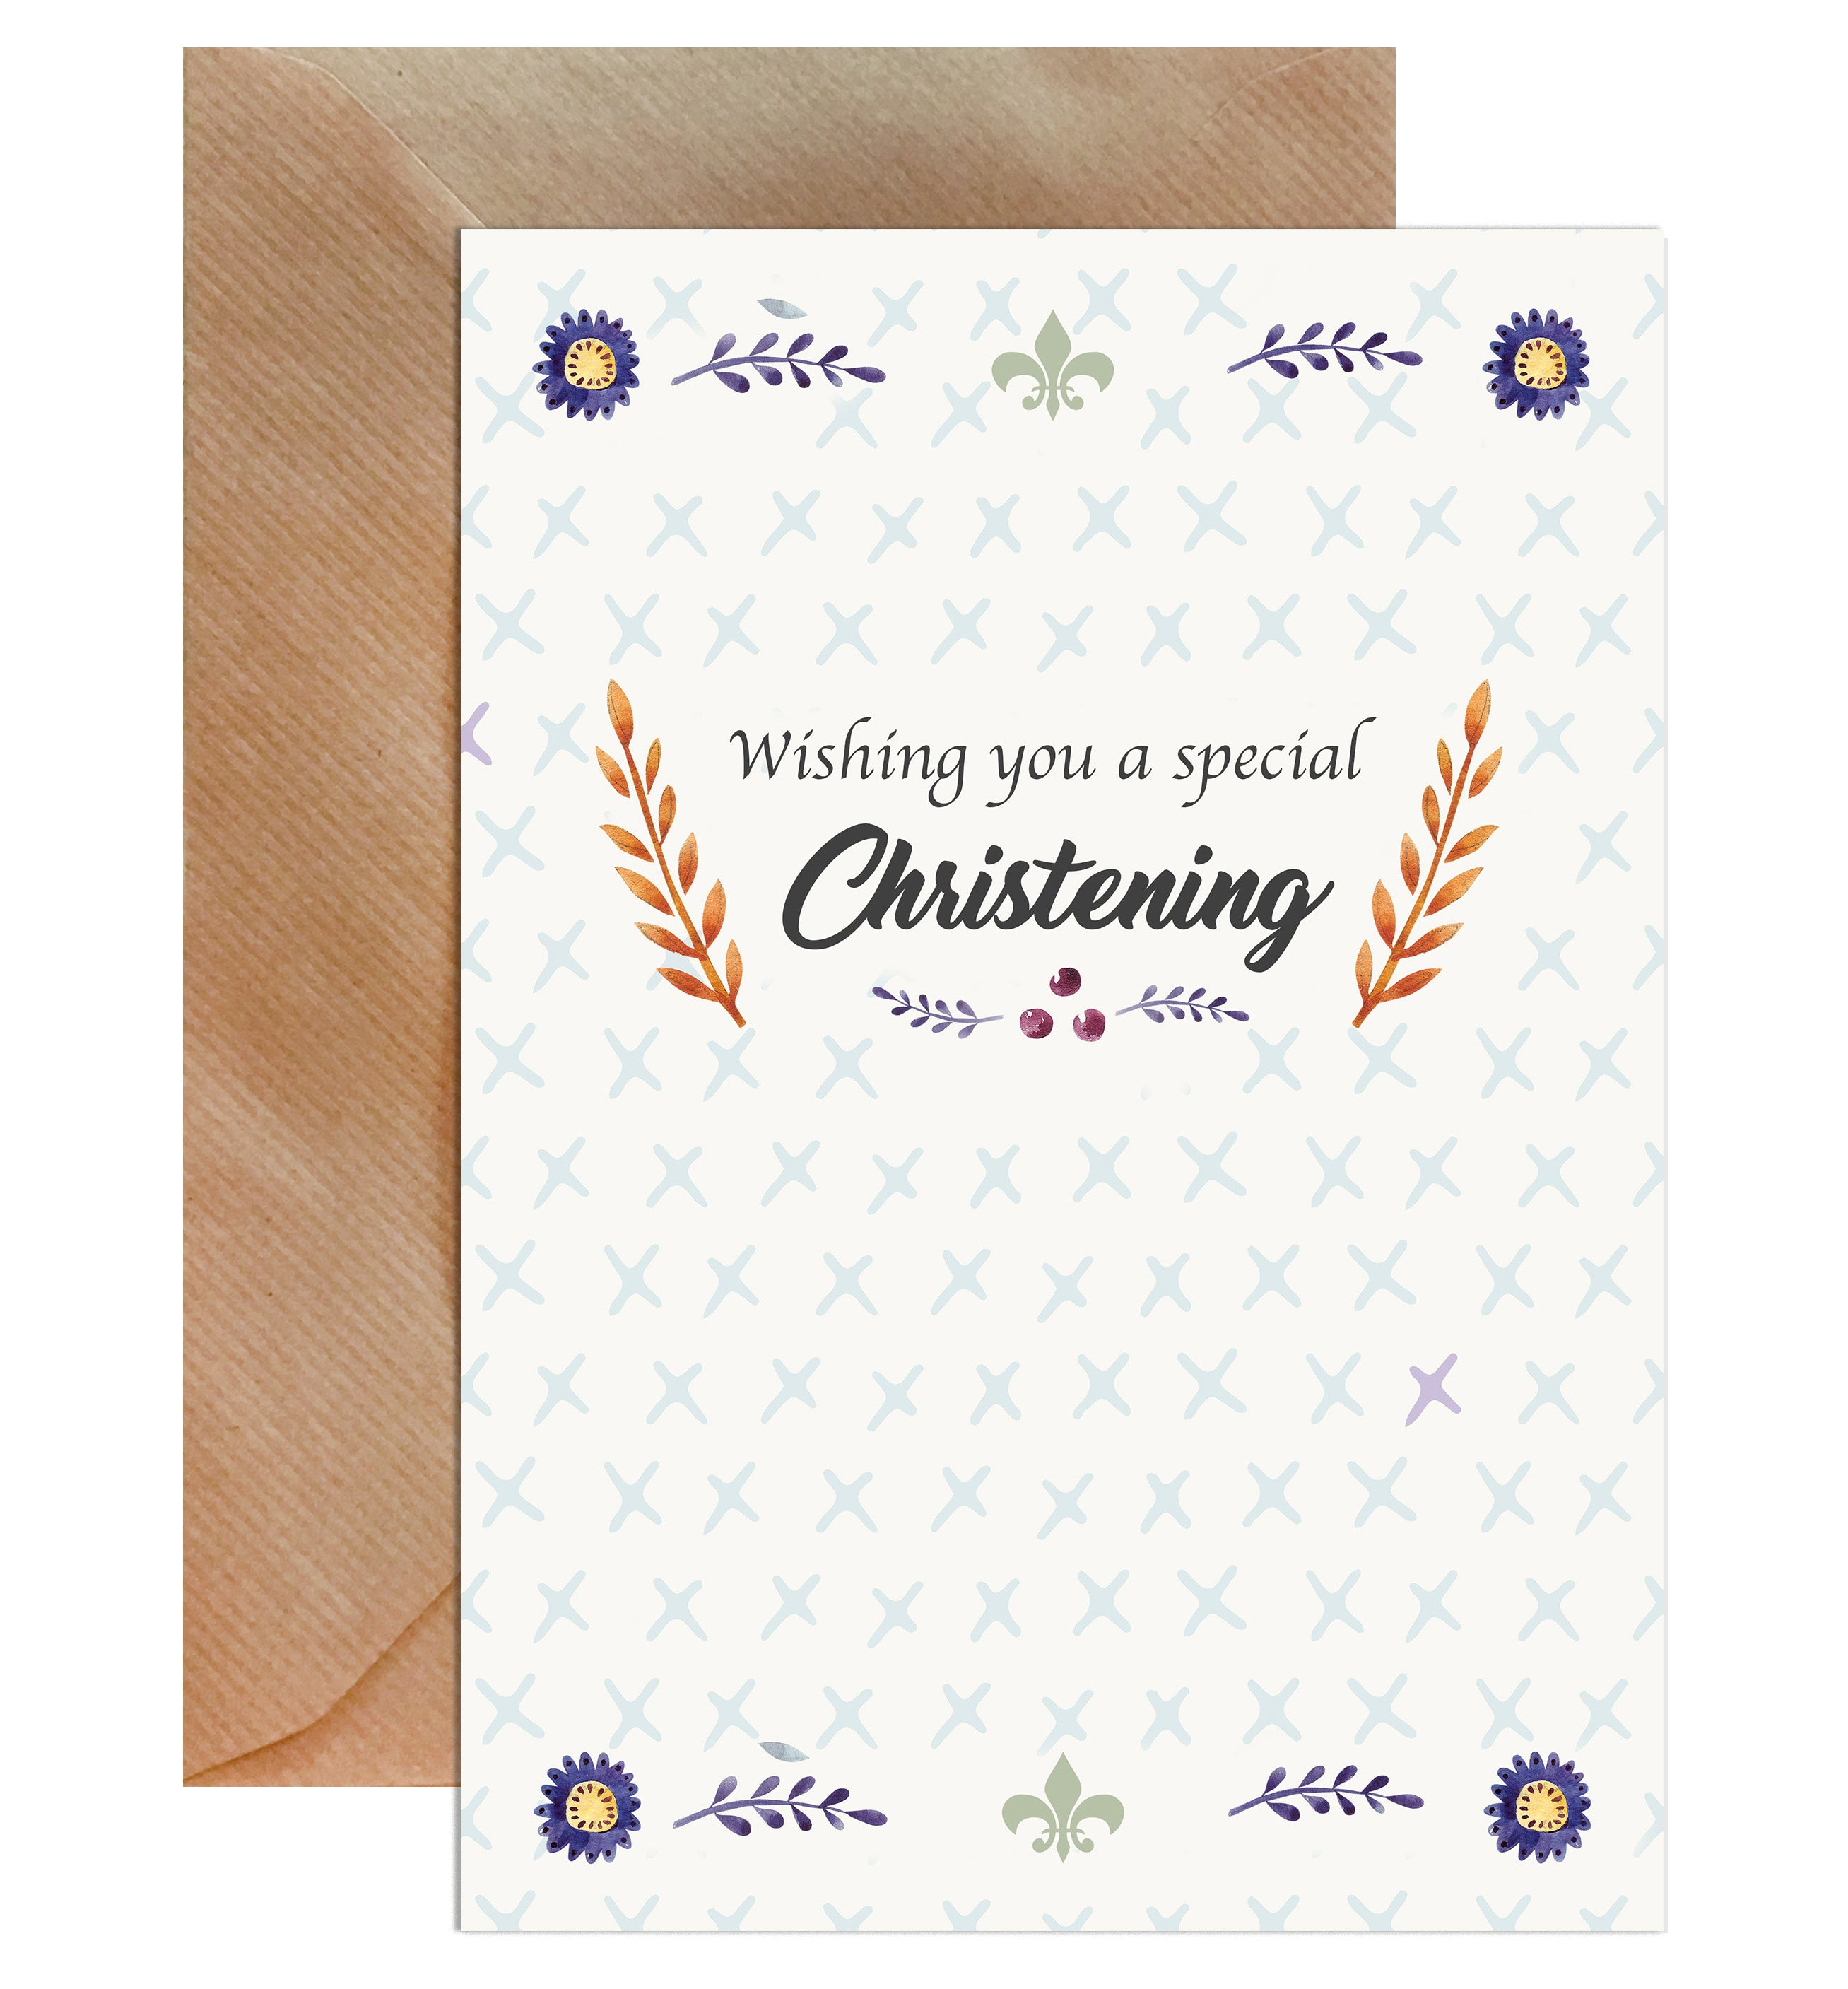 Wishing You A Special Christening Greeting Card Mode Prints